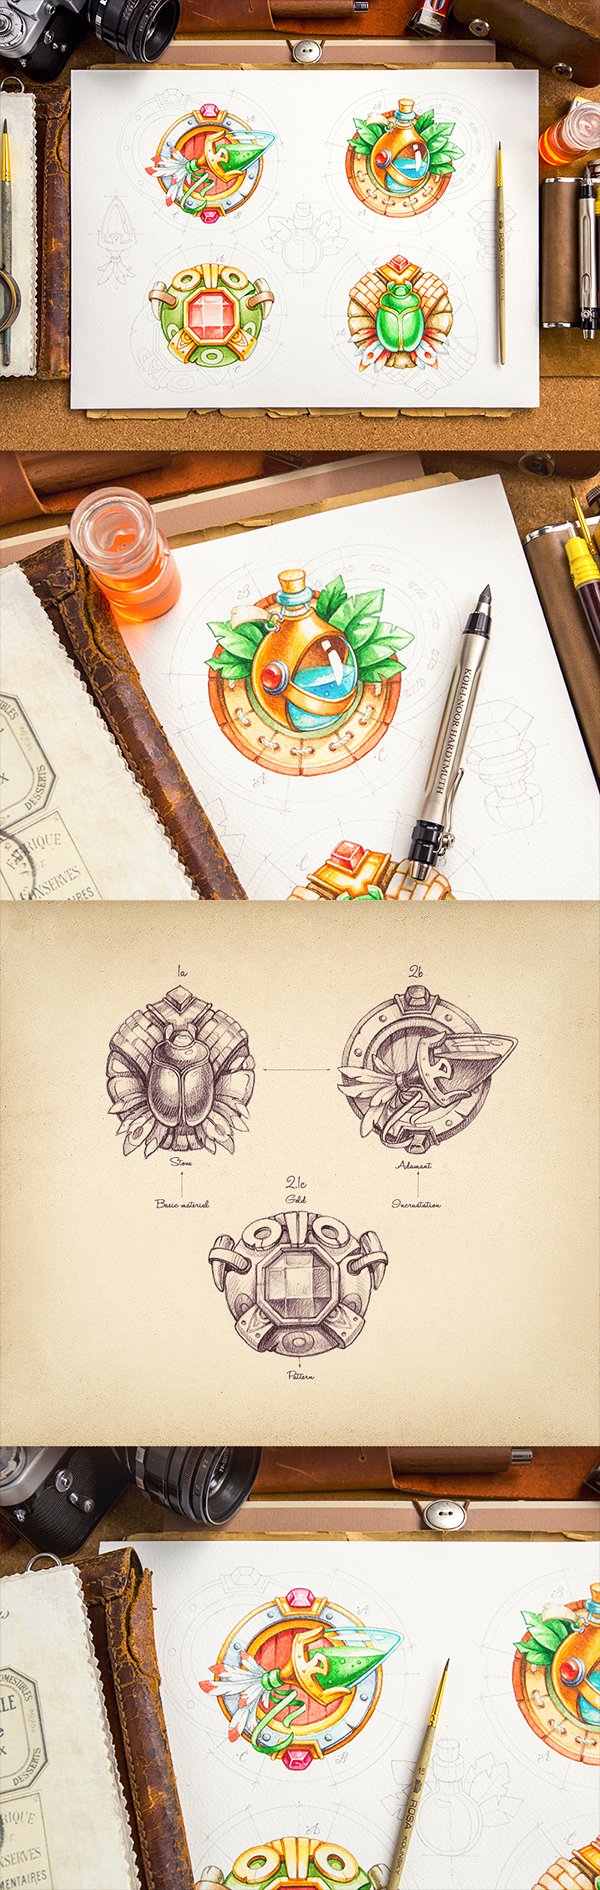 Daily Inspiration #1943